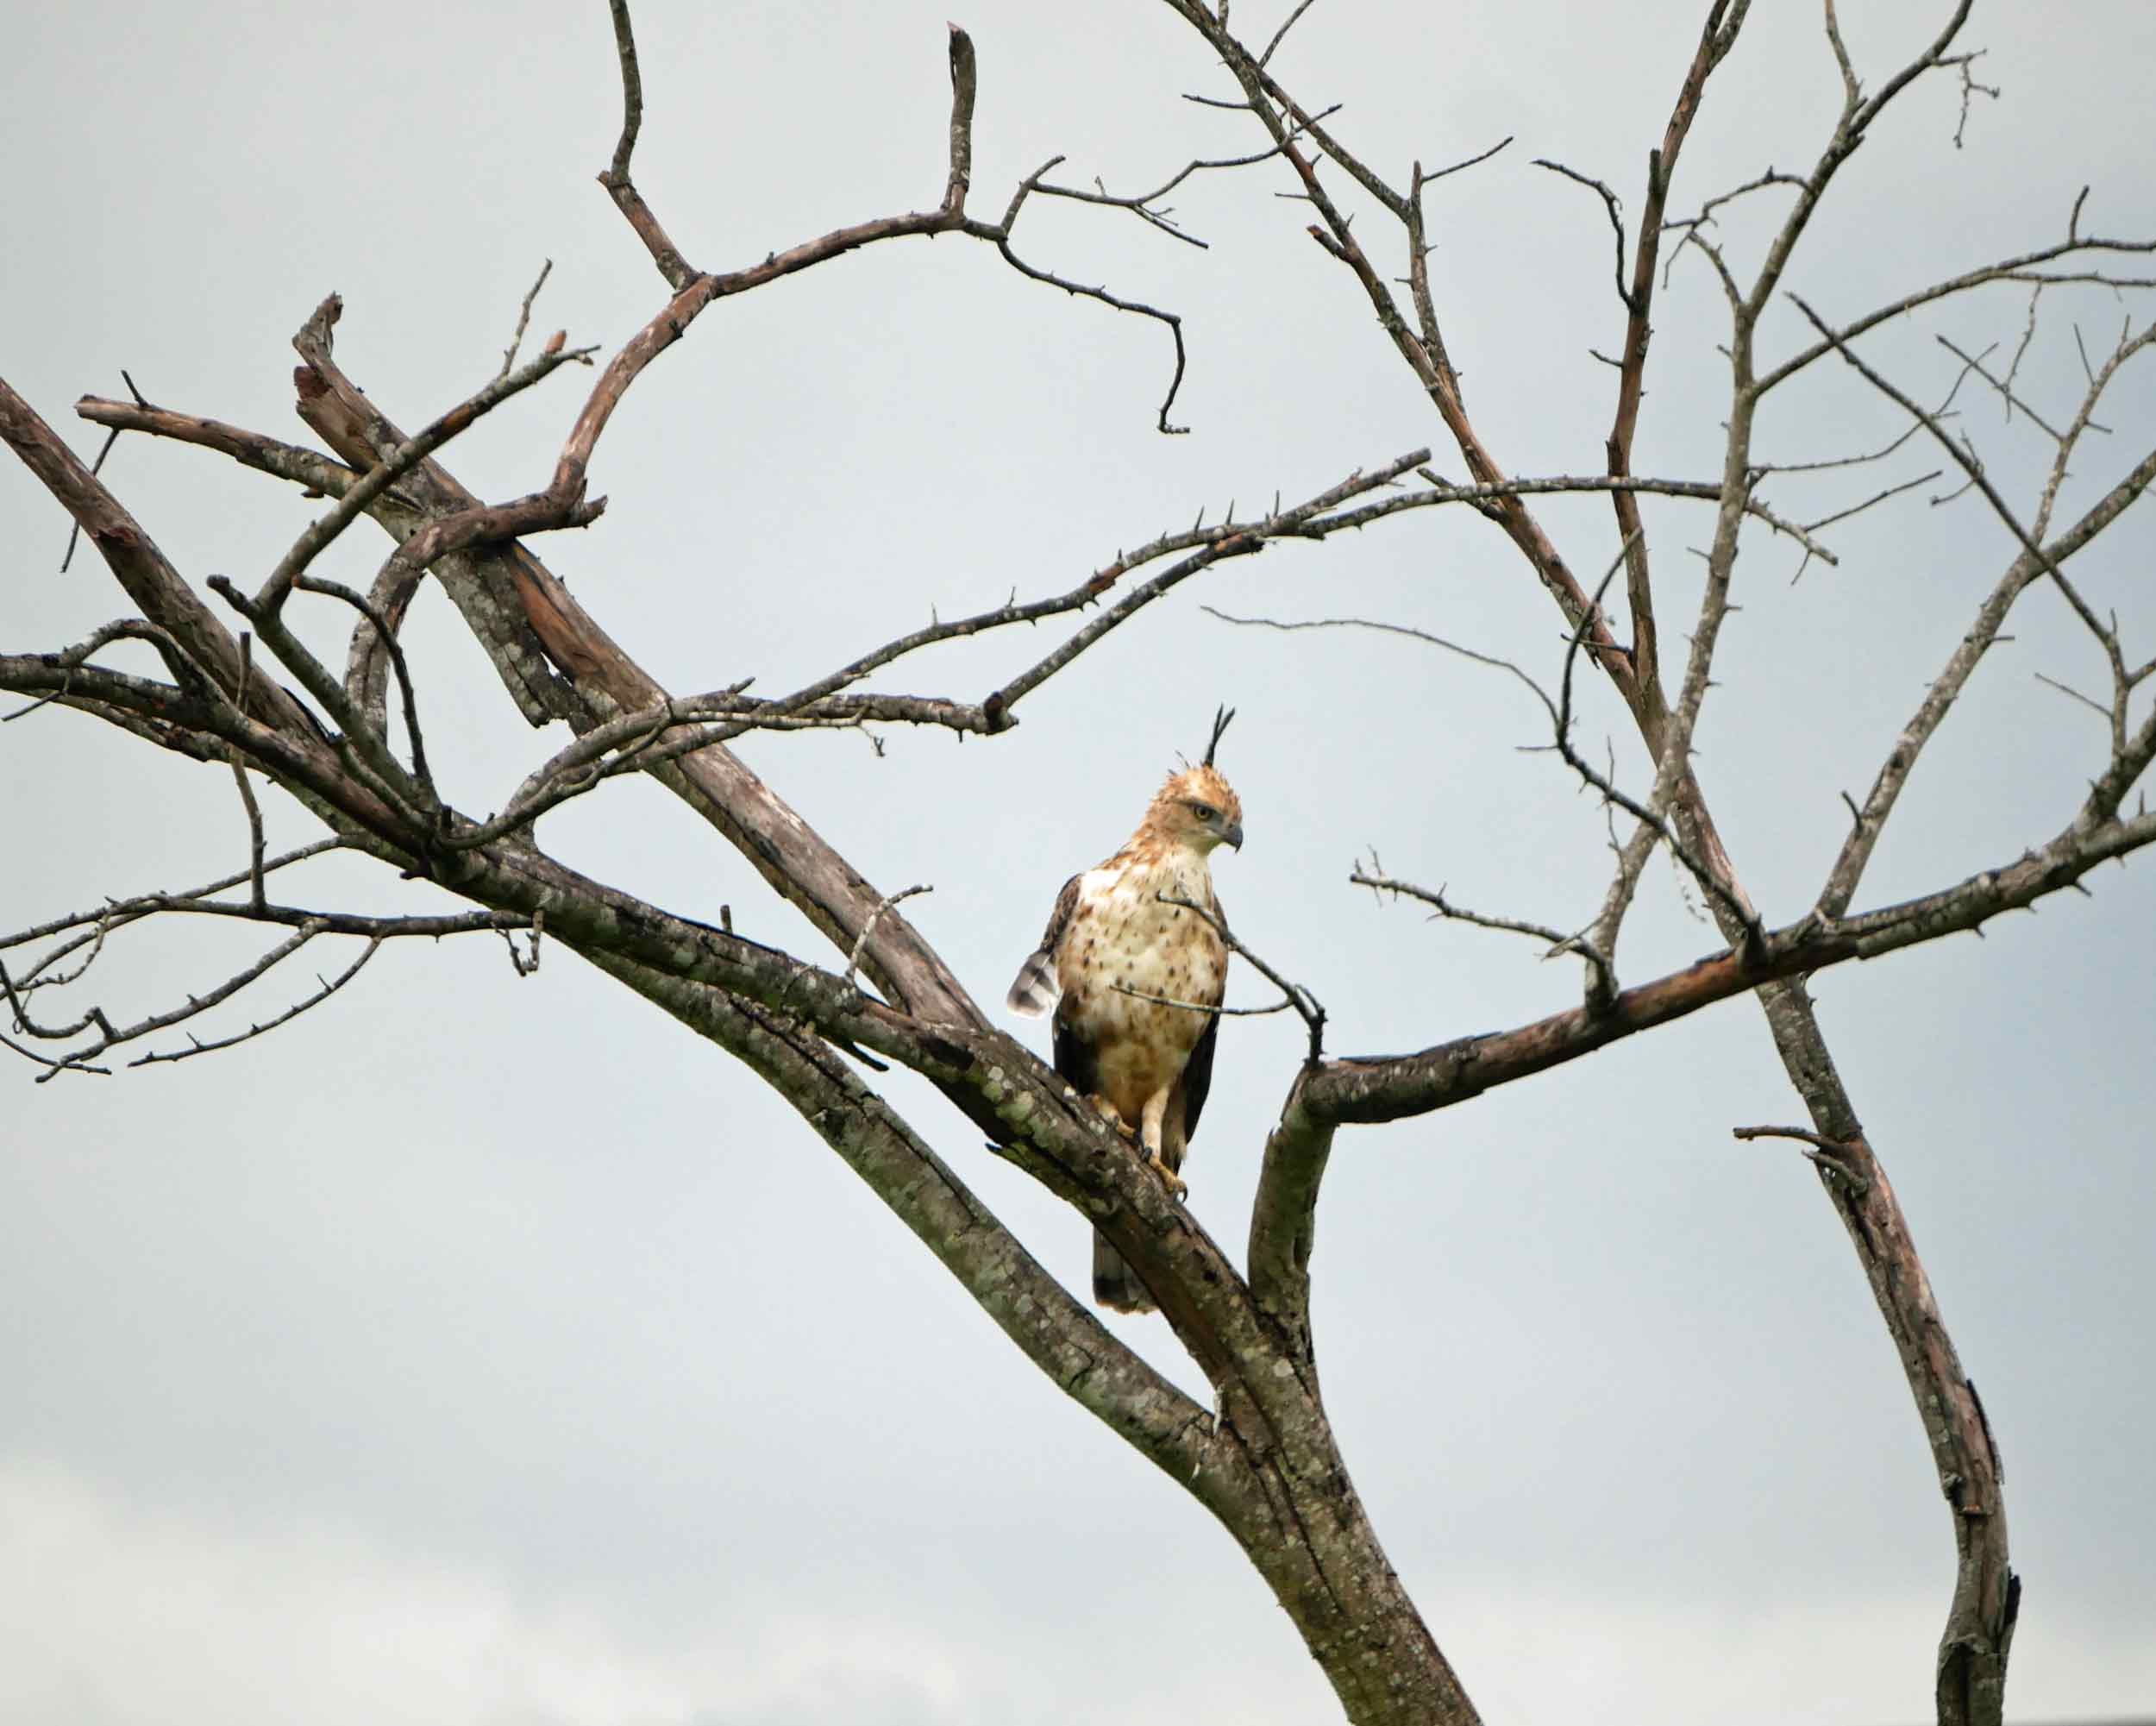 Another eagle! This time we spotted a Changeable Hawk Eagle.